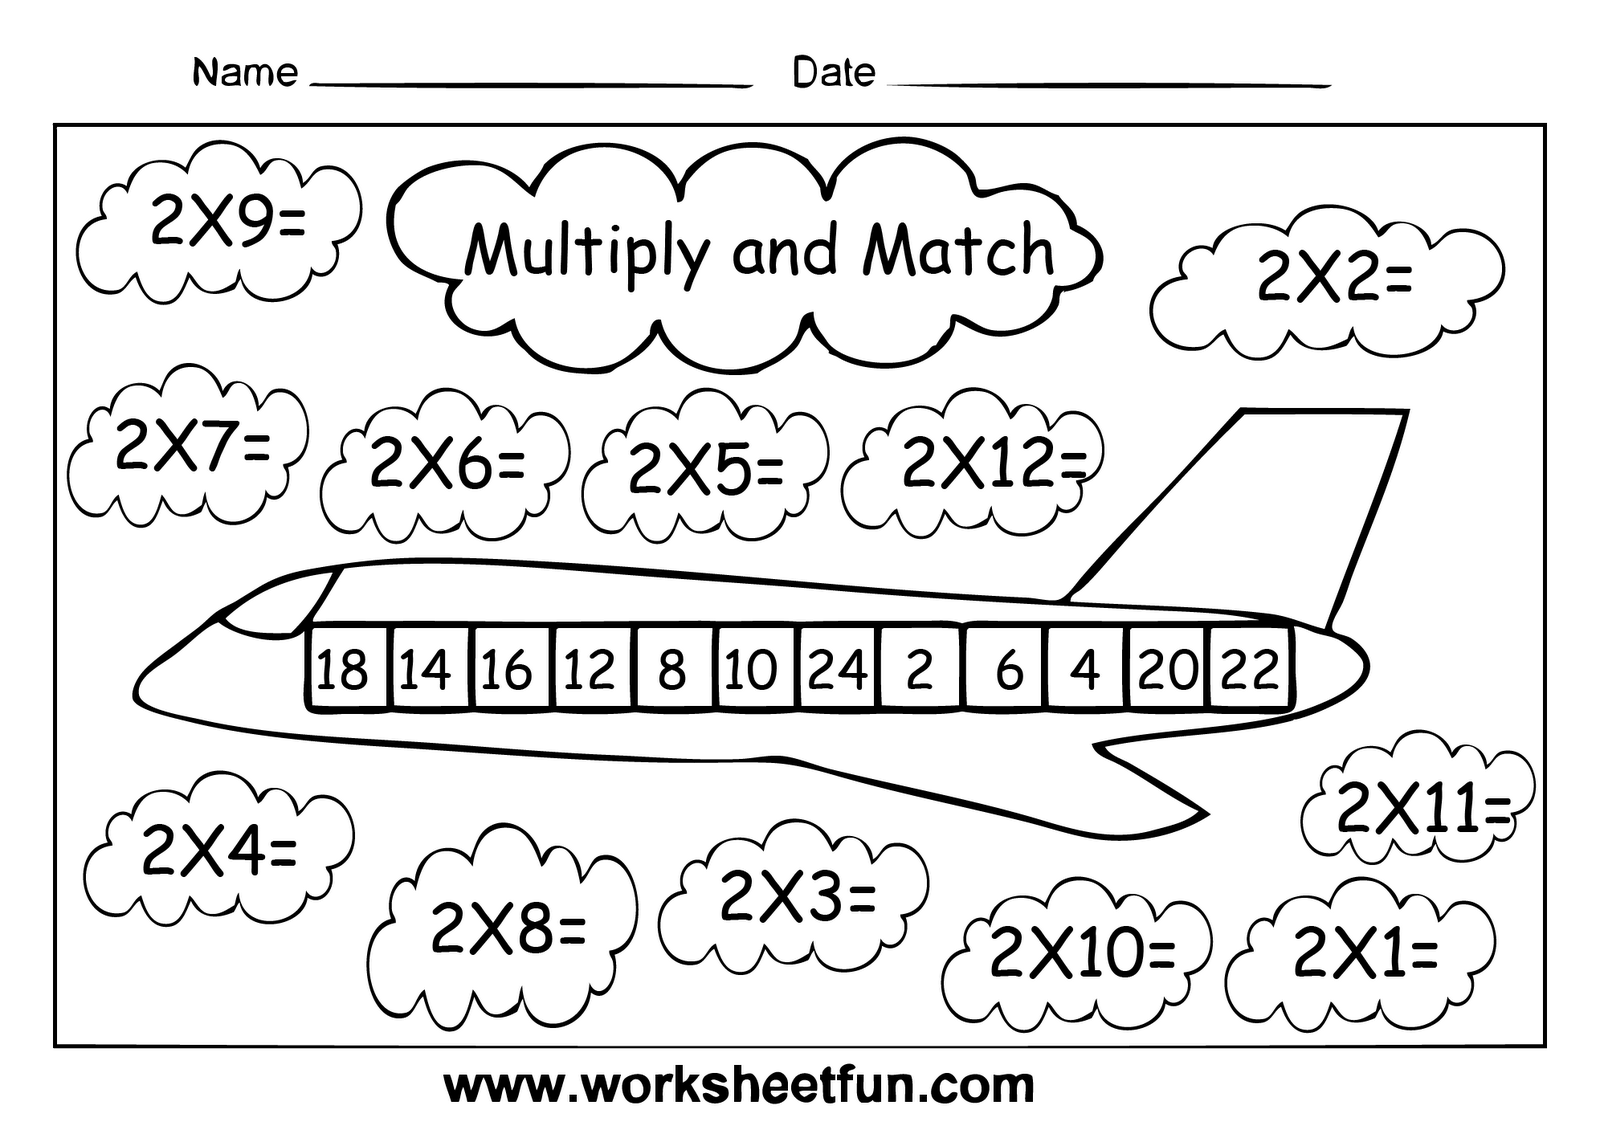 Printables Multiplication Games Worksheets maths times table games multiplication learn tables math worksheet two bloggakuten games